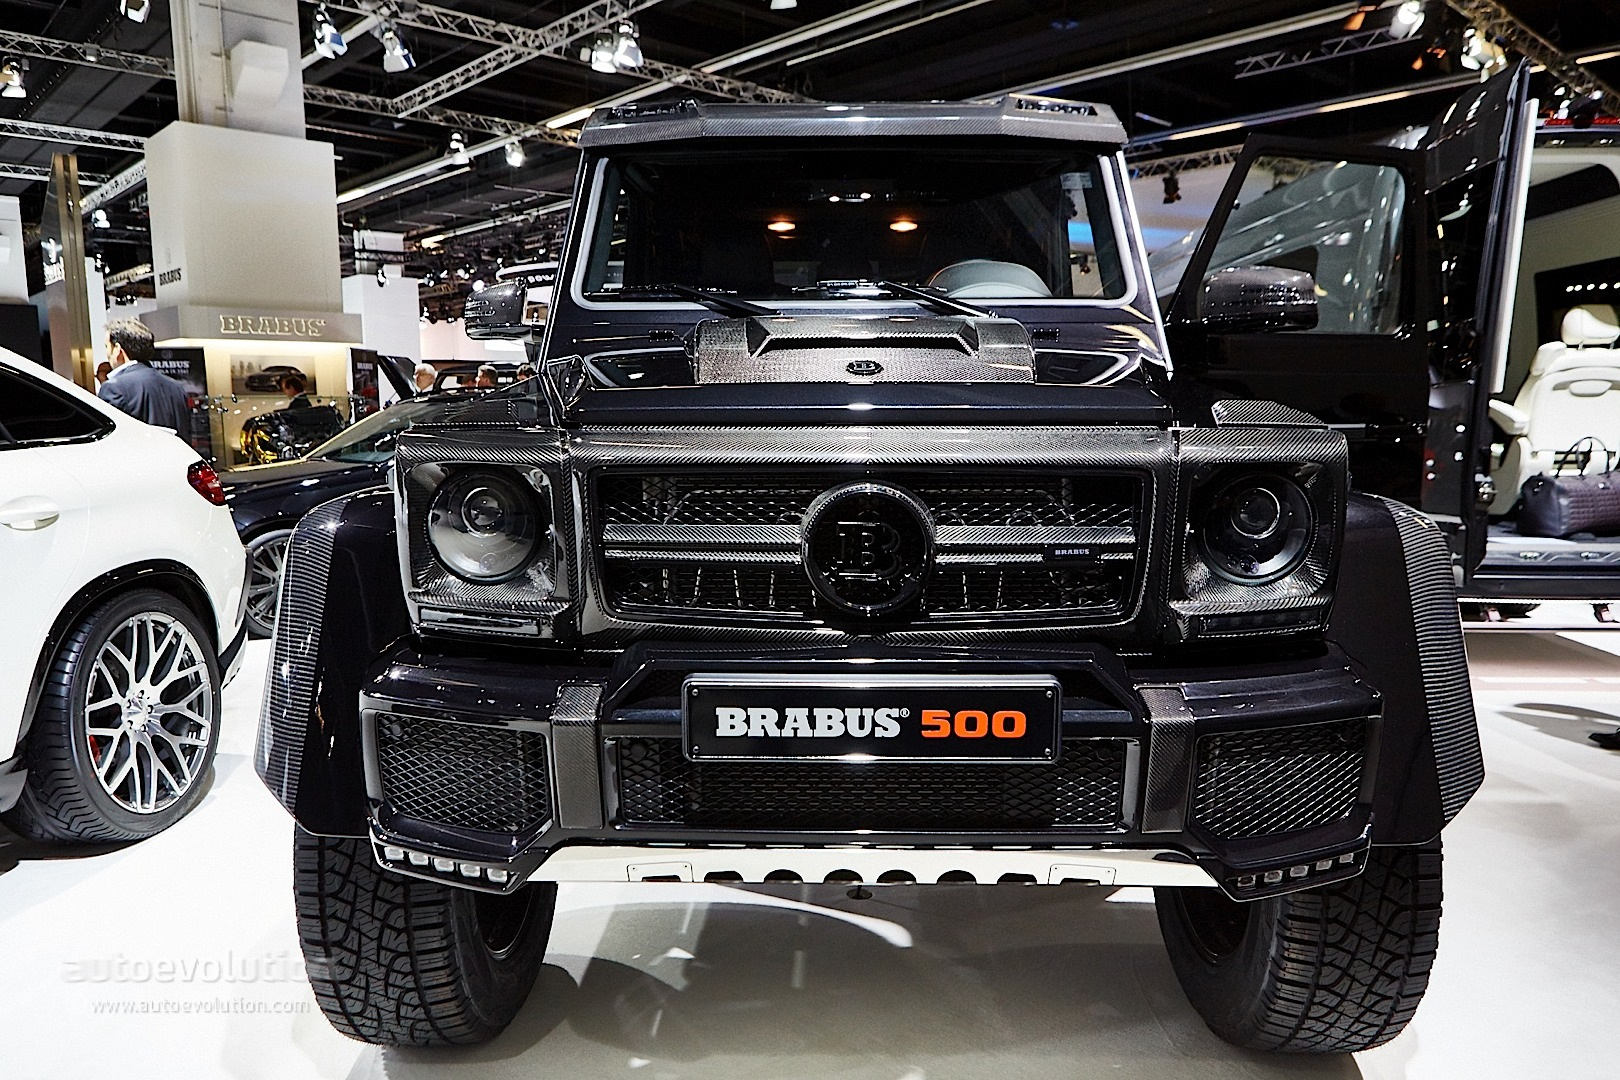 brabus mercedes g500 4x4 and g class 850 biturbo widestar militarise frankfurt autoevolution. Black Bedroom Furniture Sets. Home Design Ideas